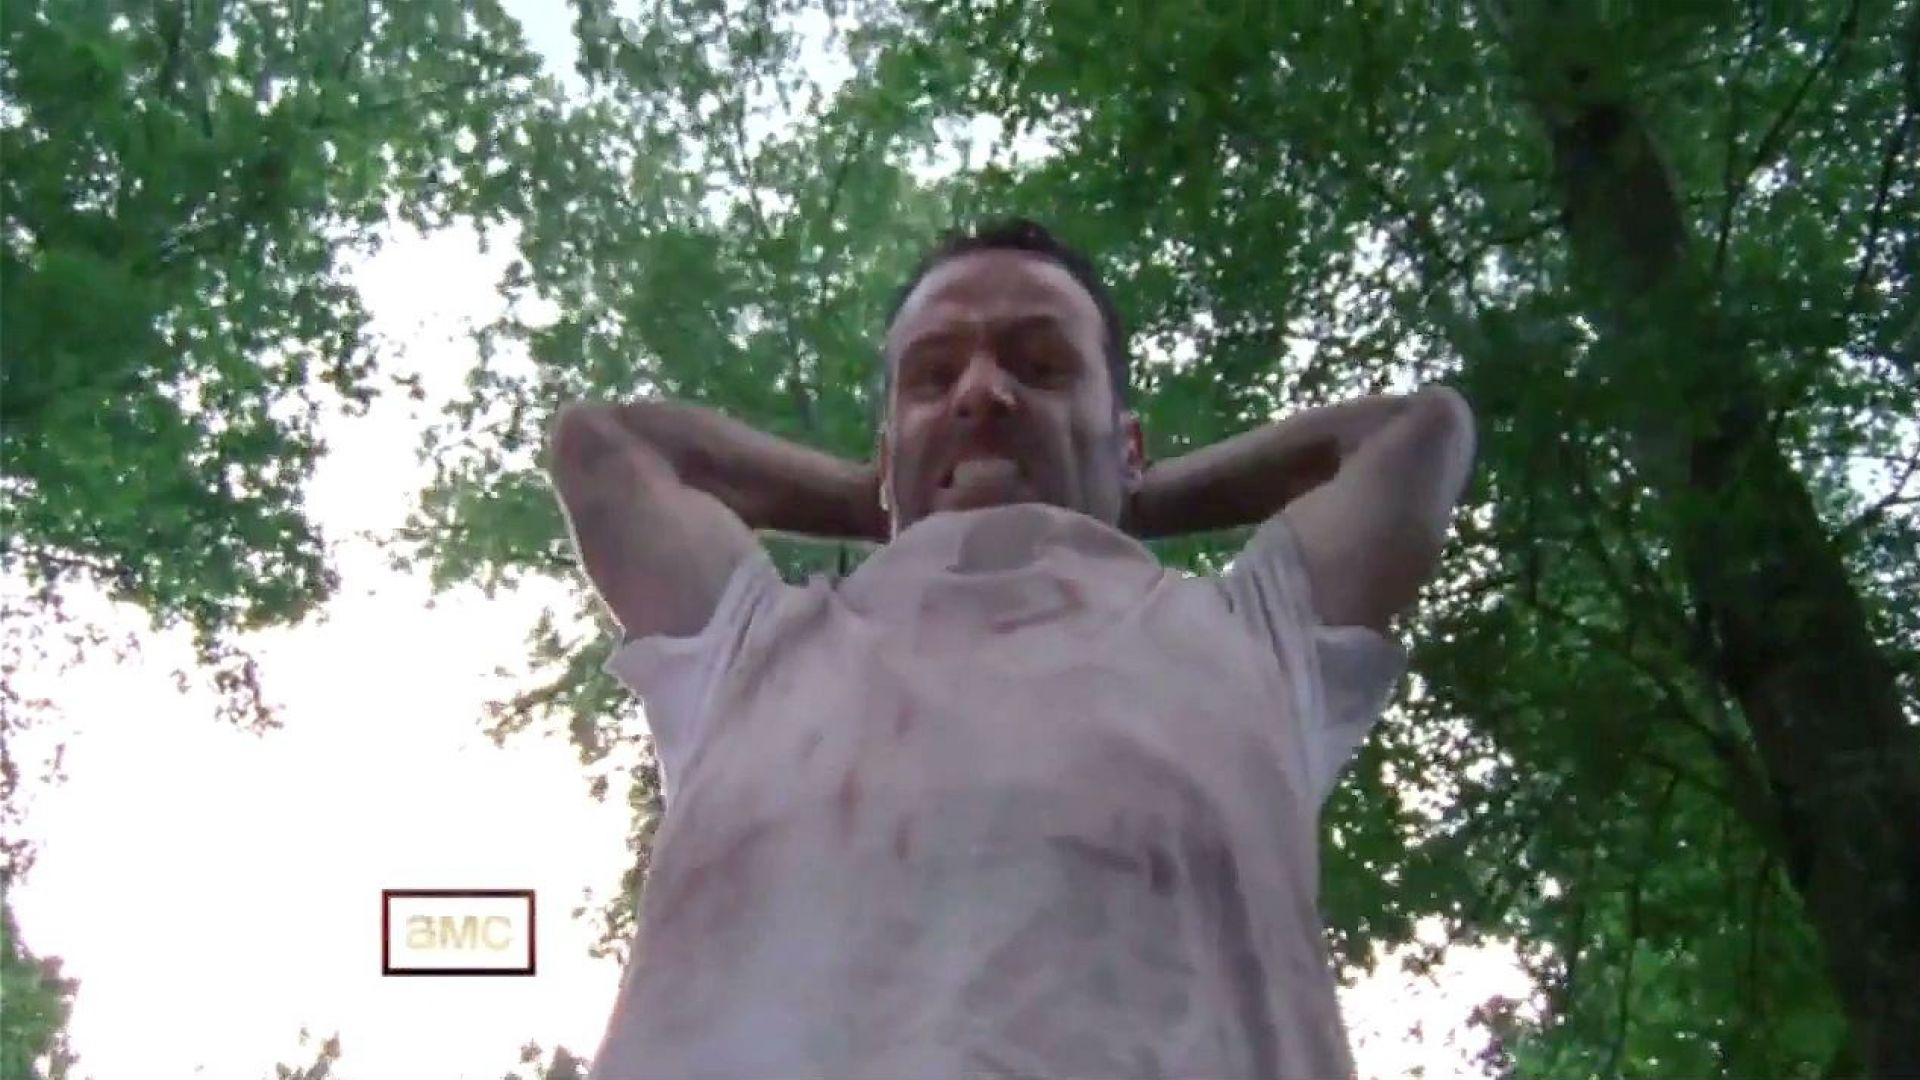 Rick Grimes awaits the zombies in The Walking Dead season two